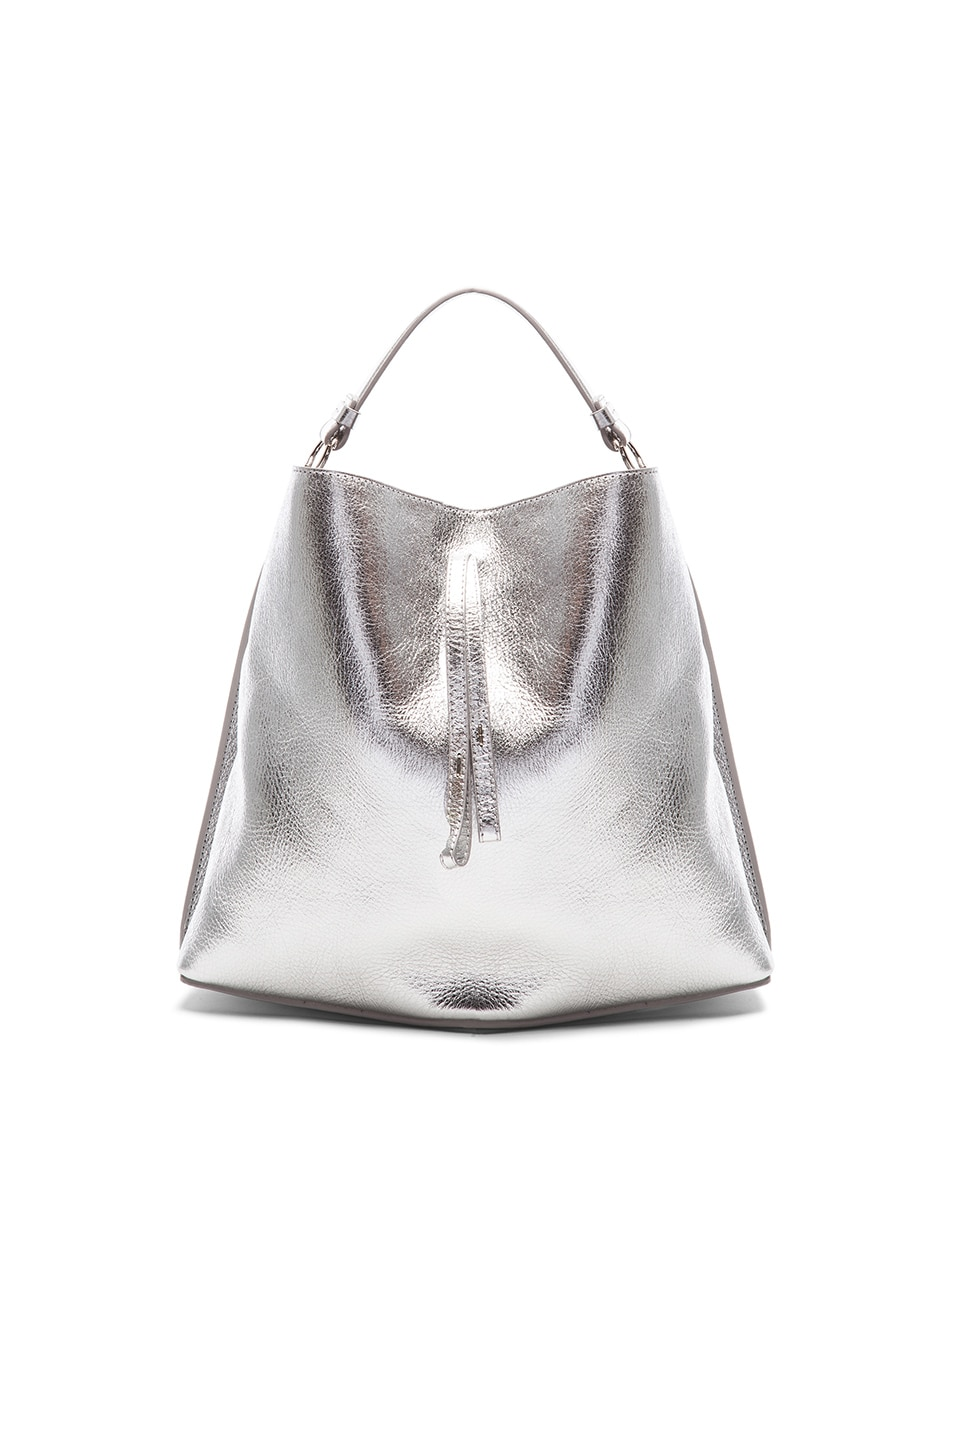 Image 1 of Maison Margiela Laminated Leather Bucket Bag in Silver